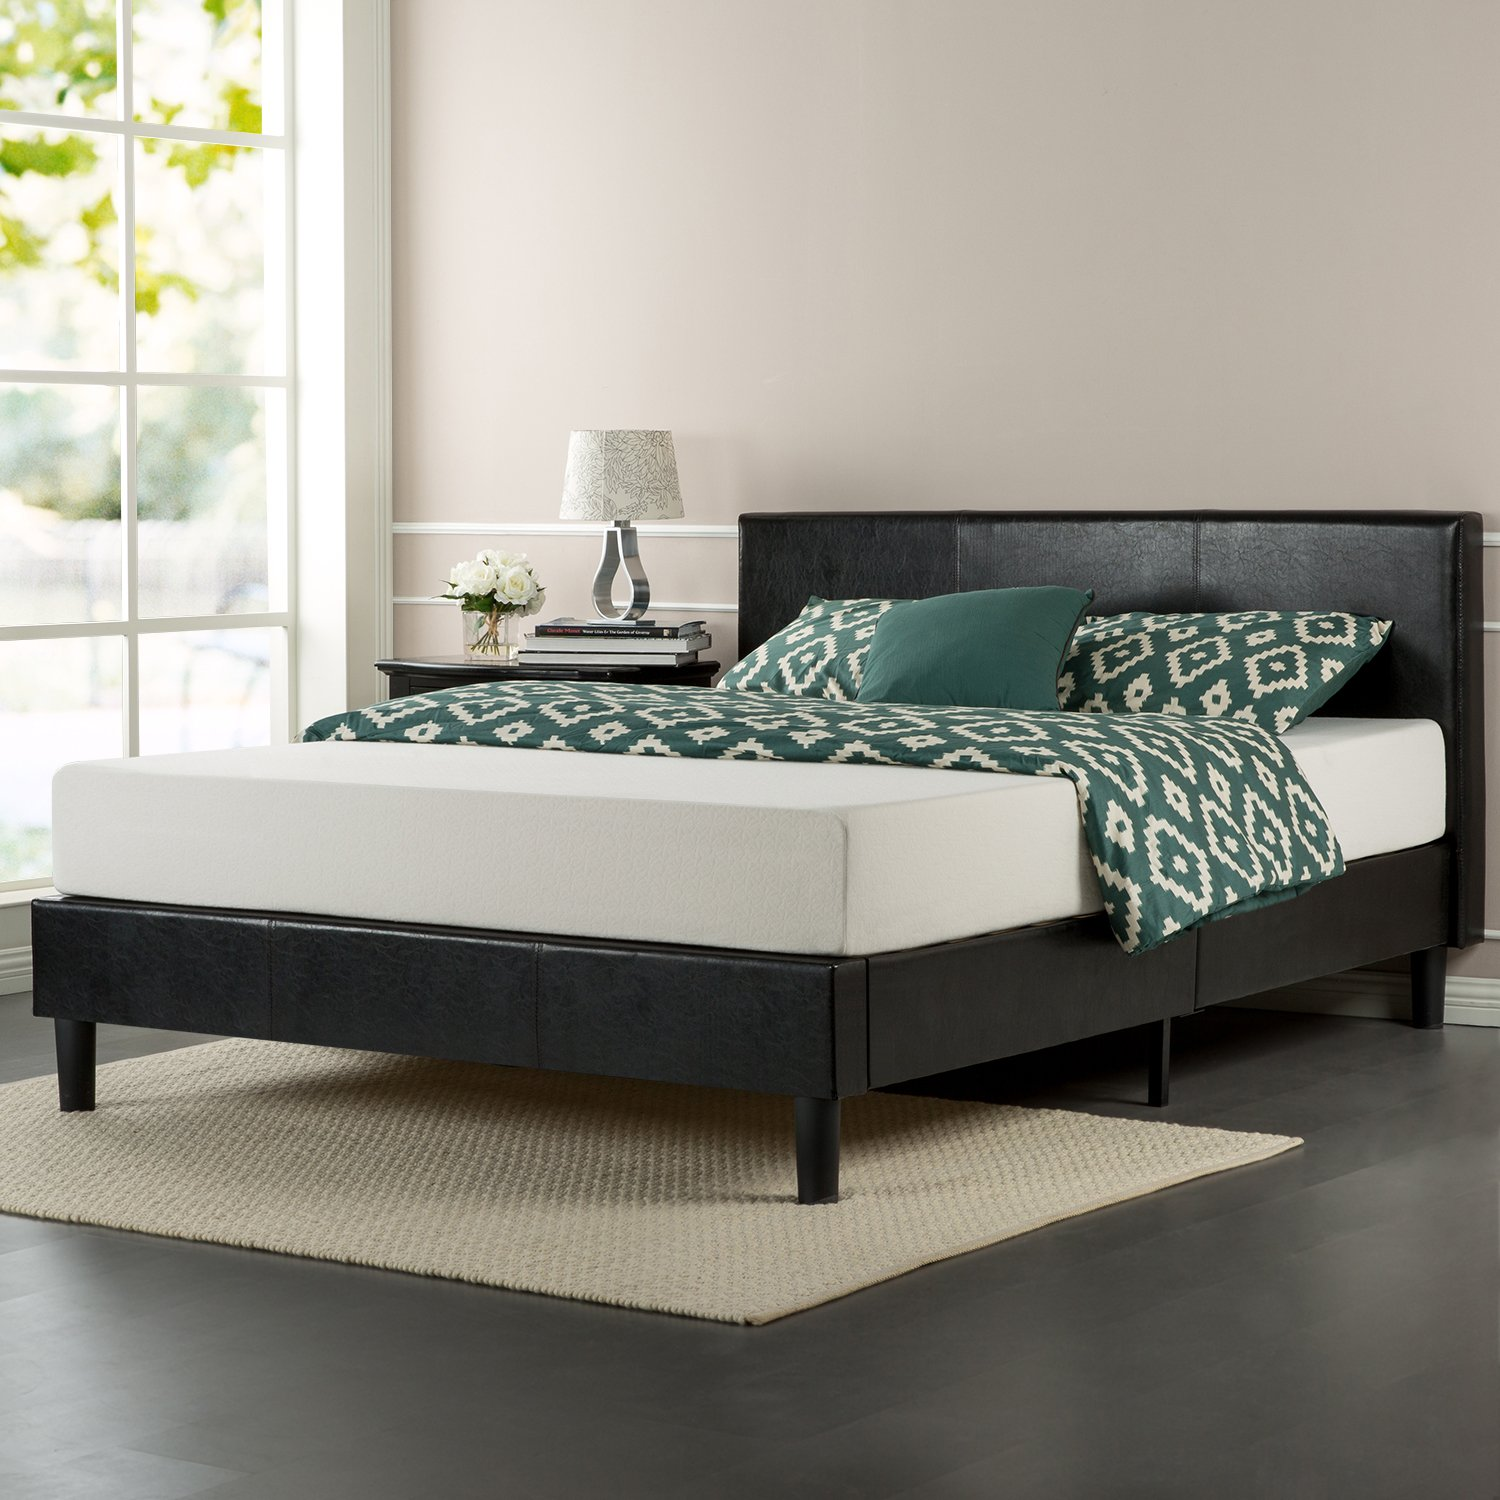 Zinus Faux Leather Upholstered Platform Bed with Wooden Slats, King